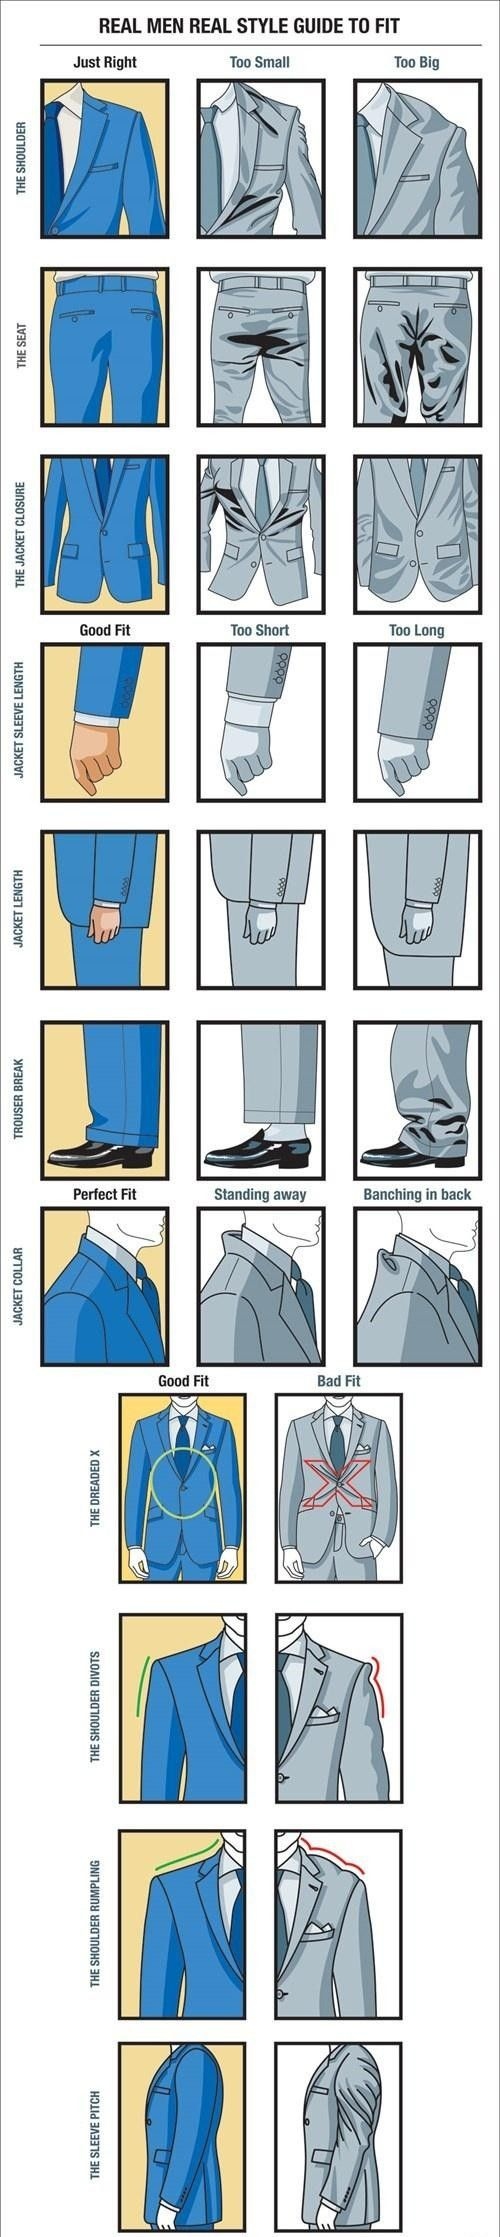 Men's Style Guide To Fit